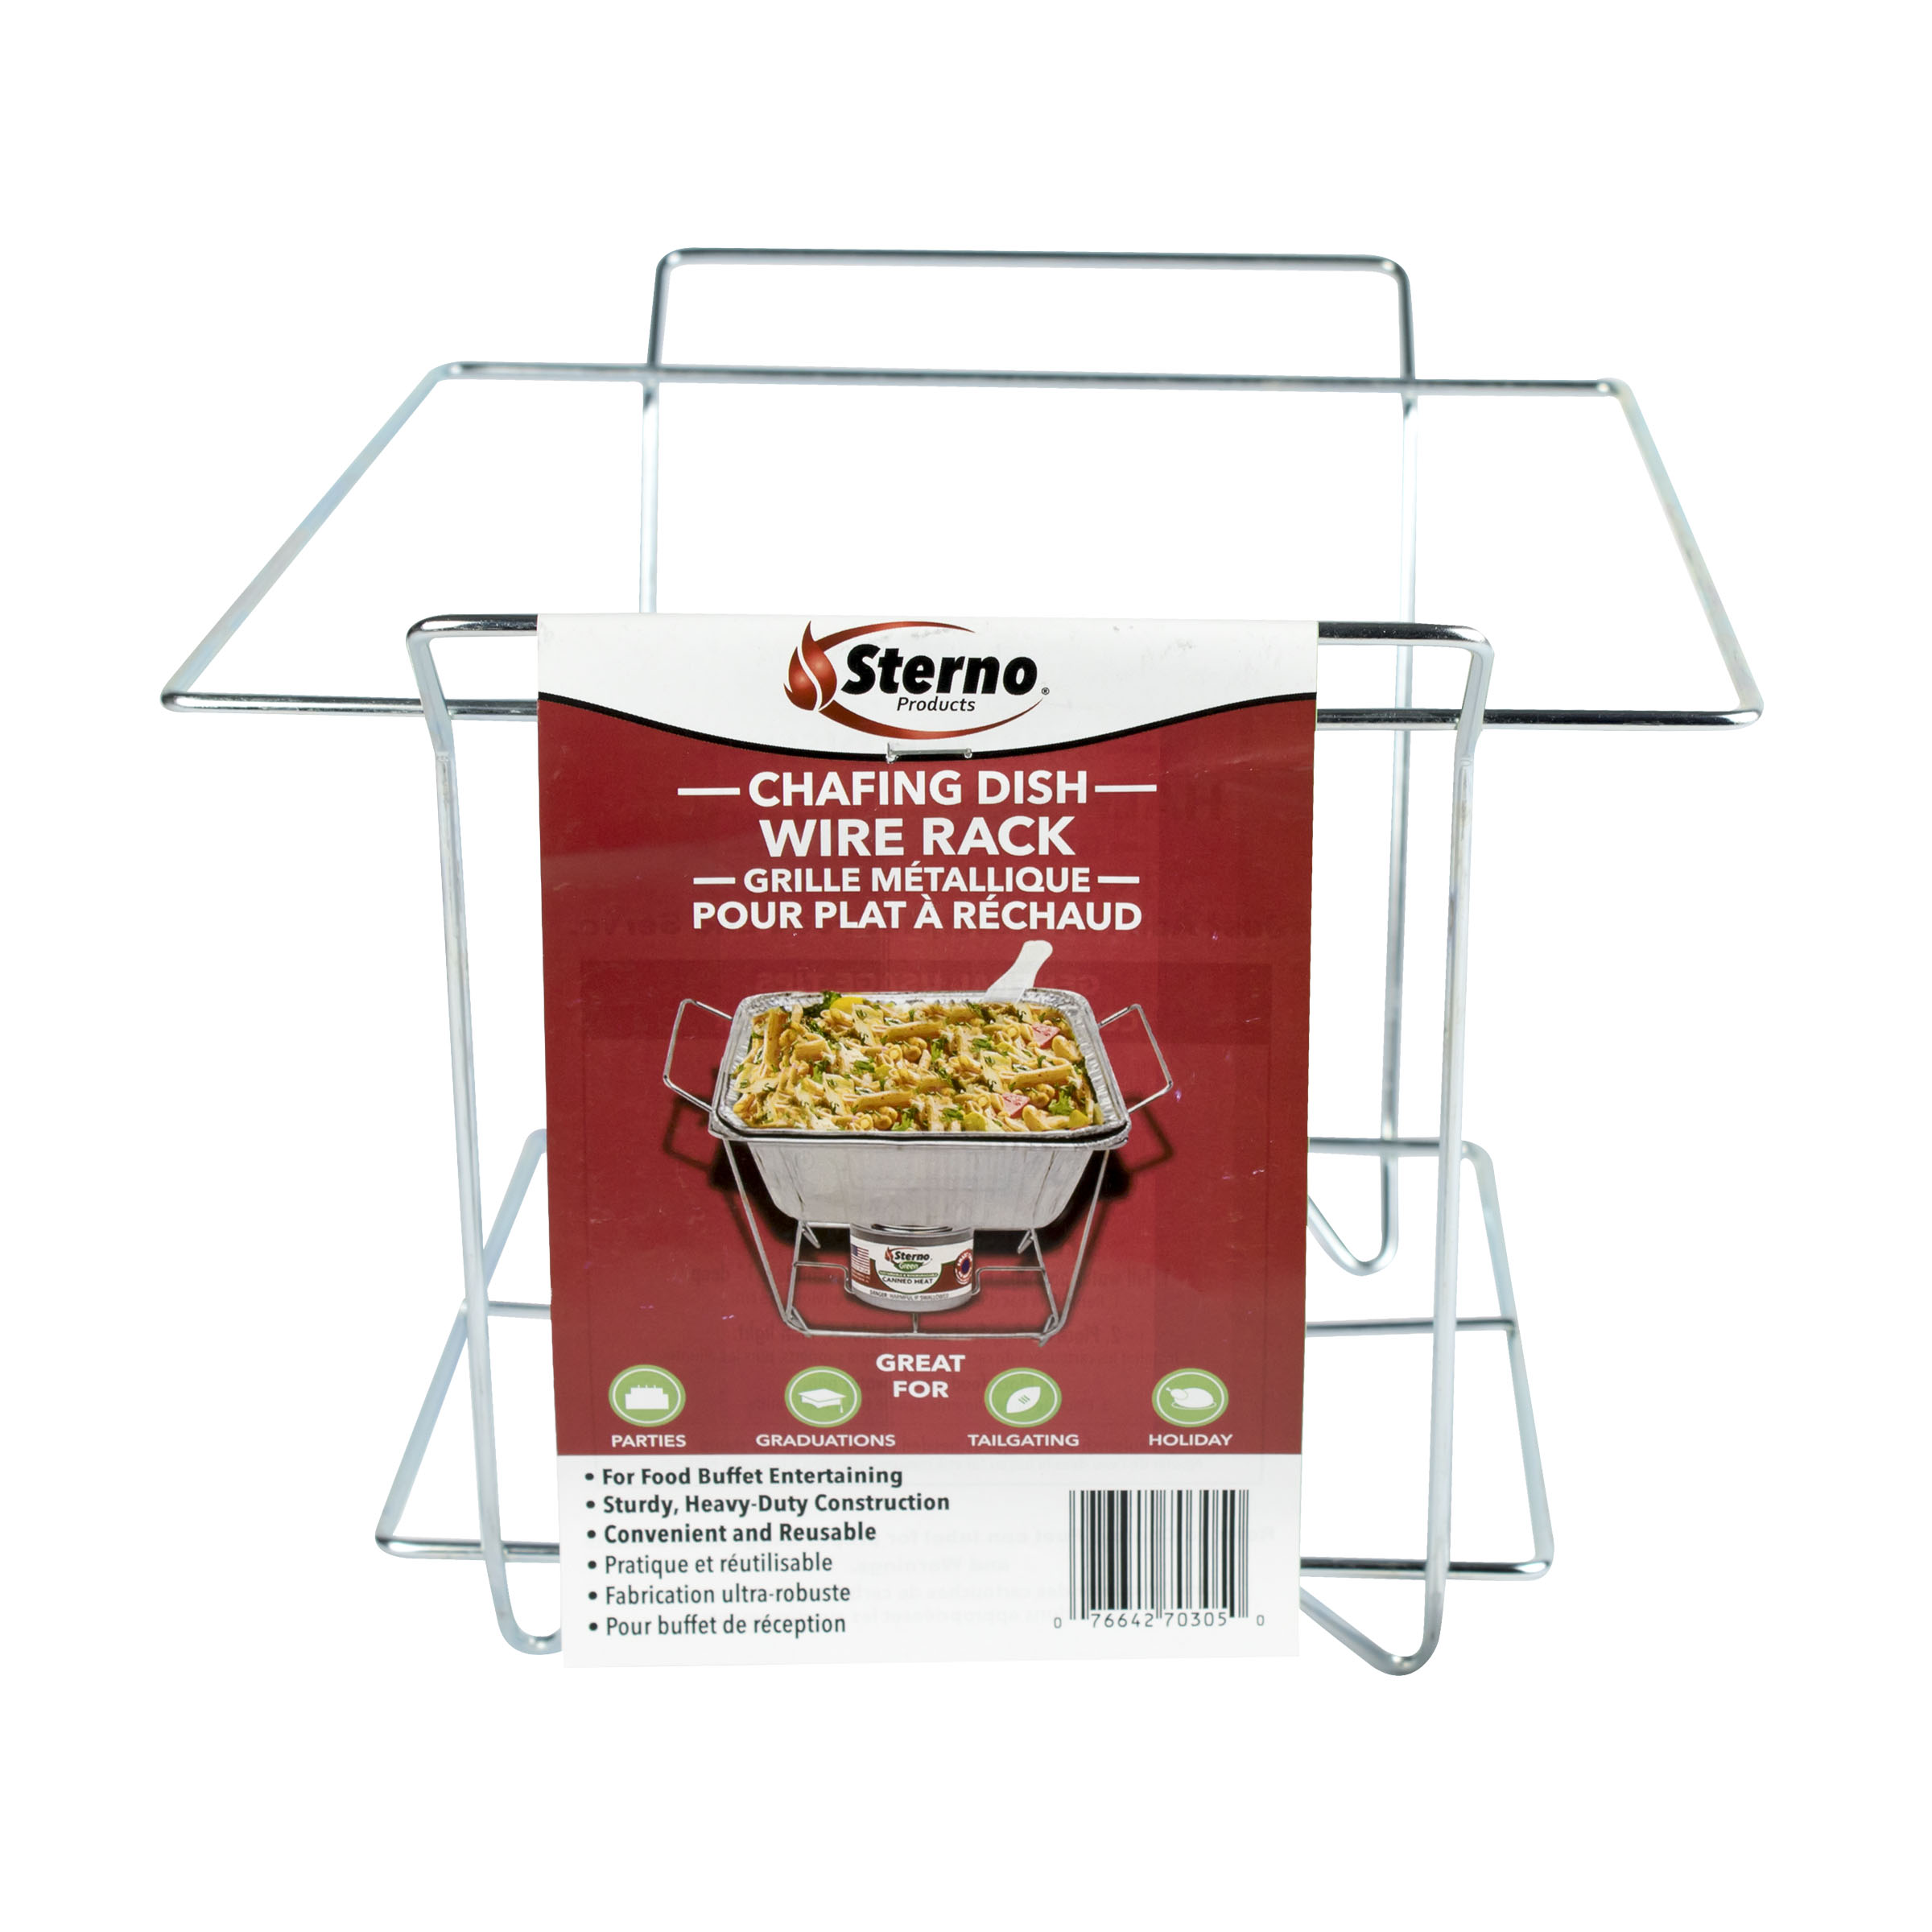 Sterno 70306 chafers & accessories